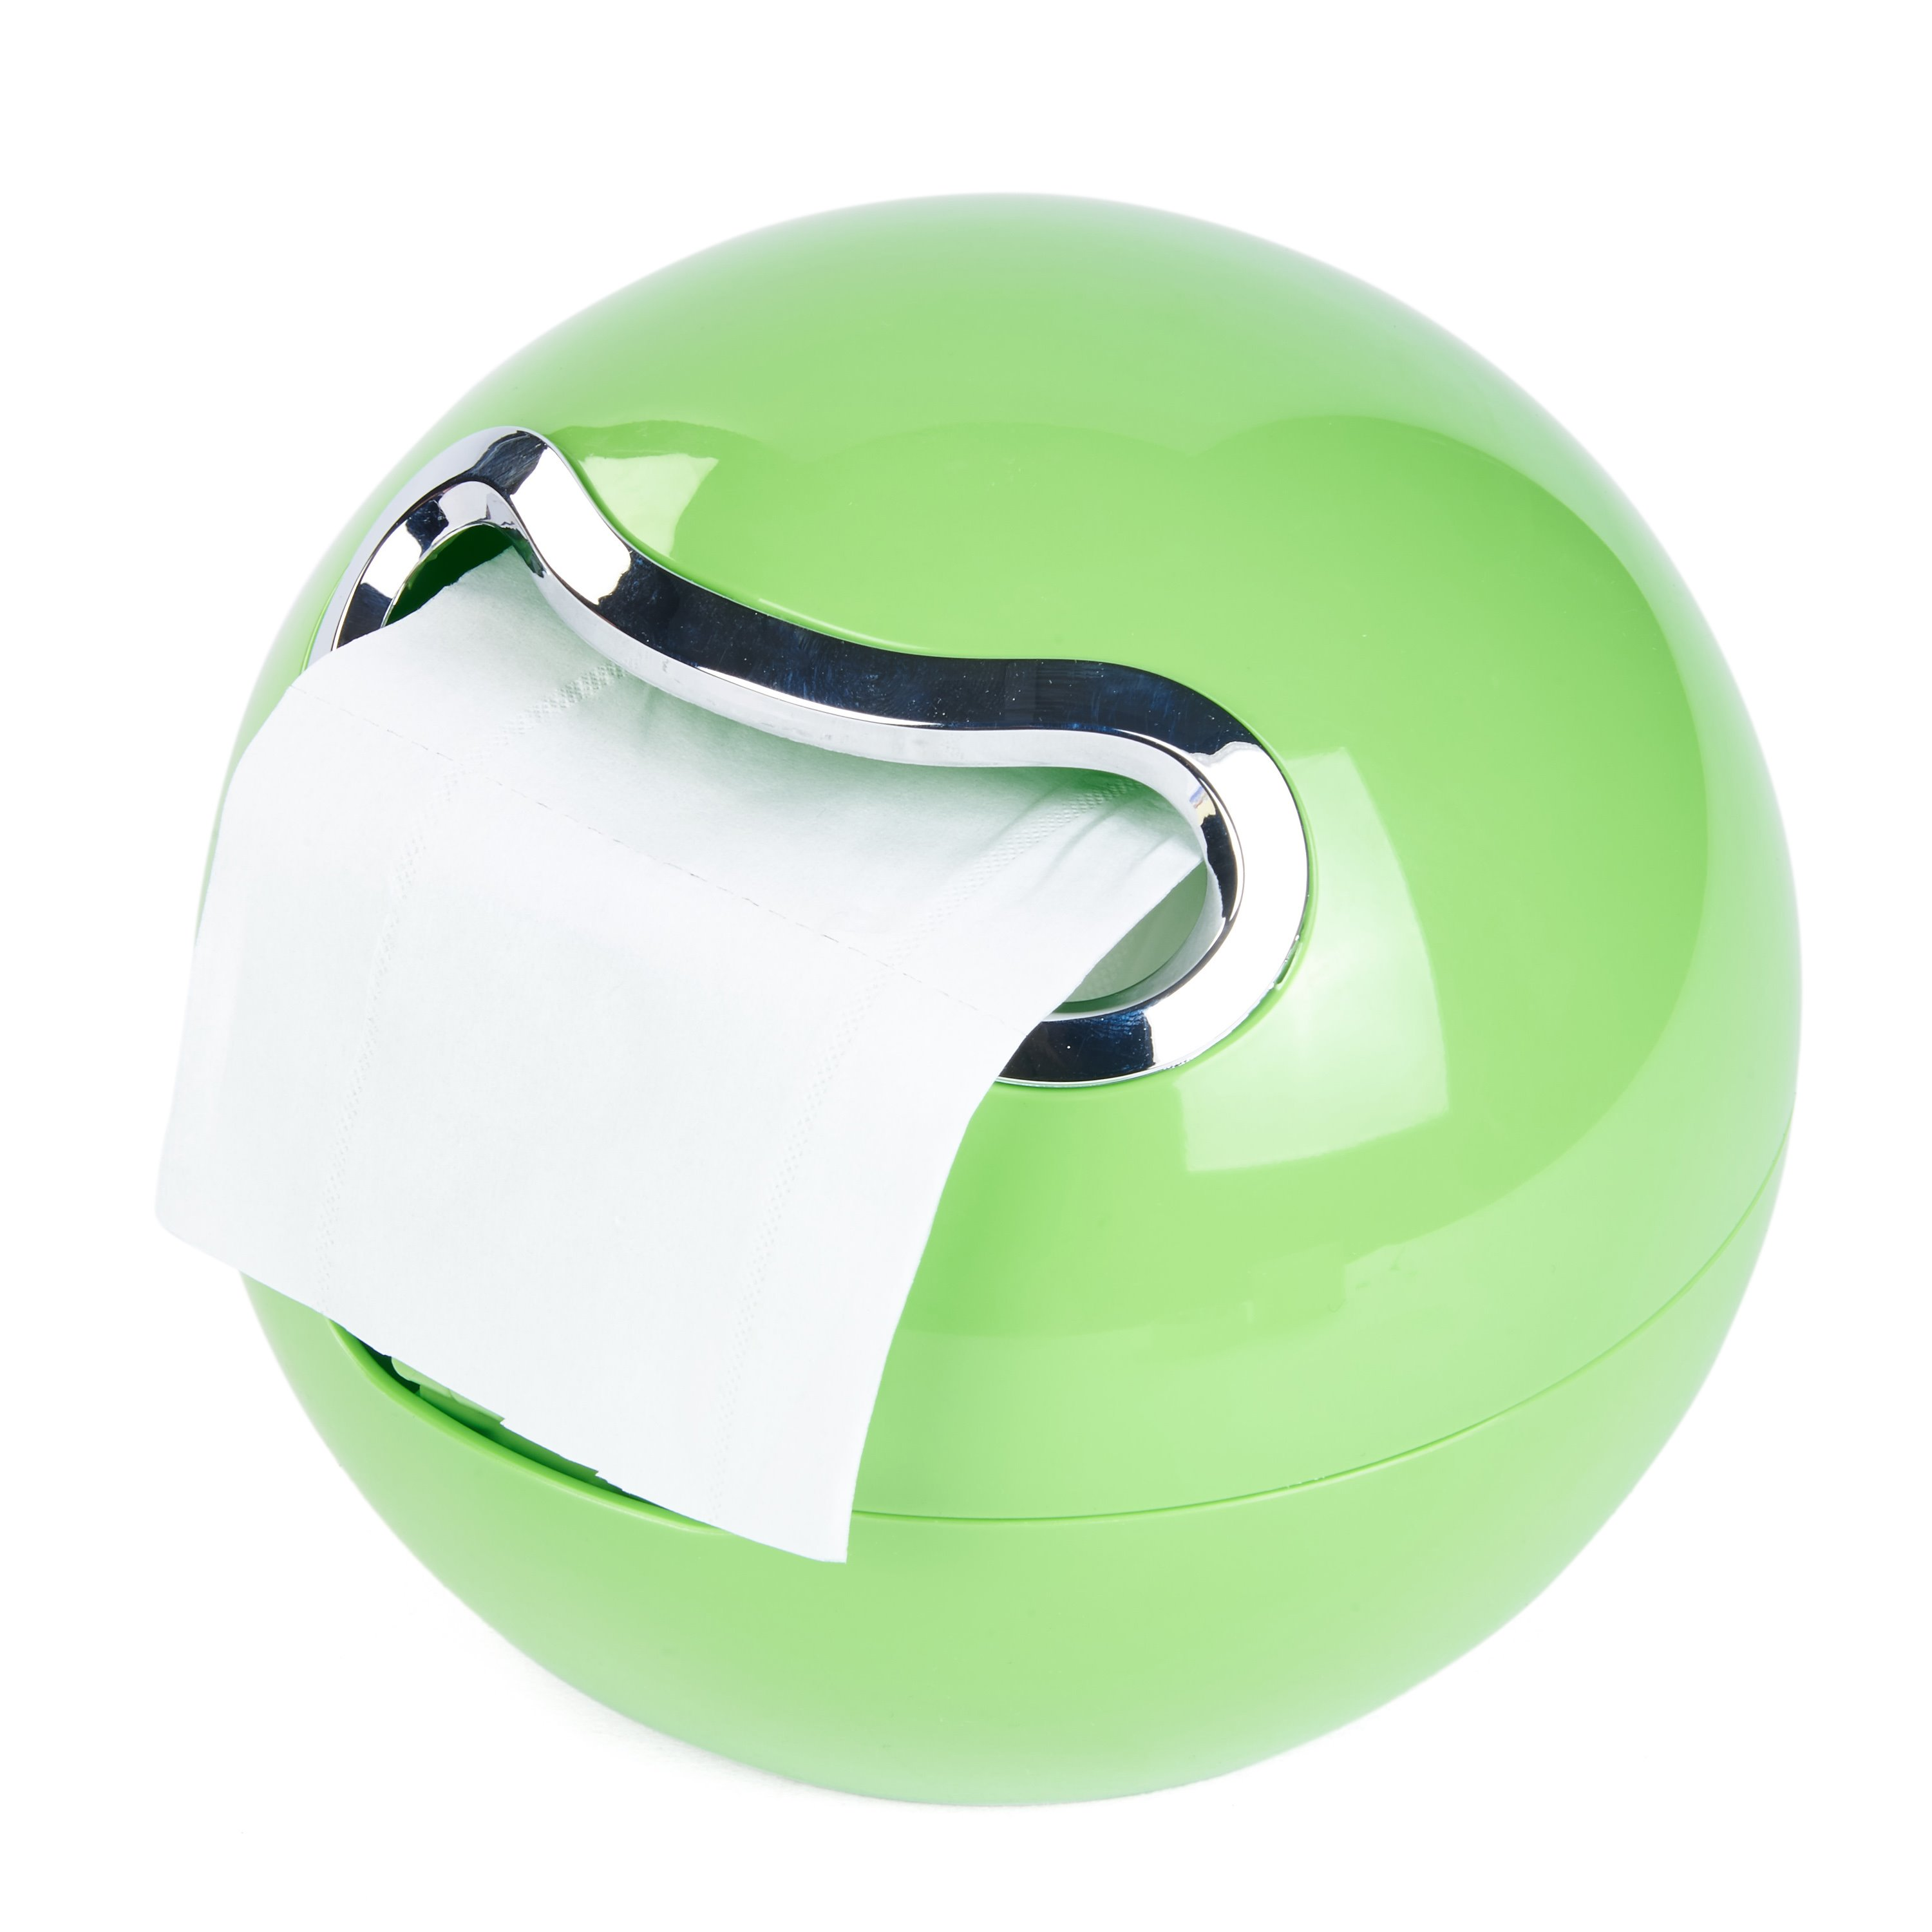 Creative Adorable Candy Color Round Toilet Paper Holder